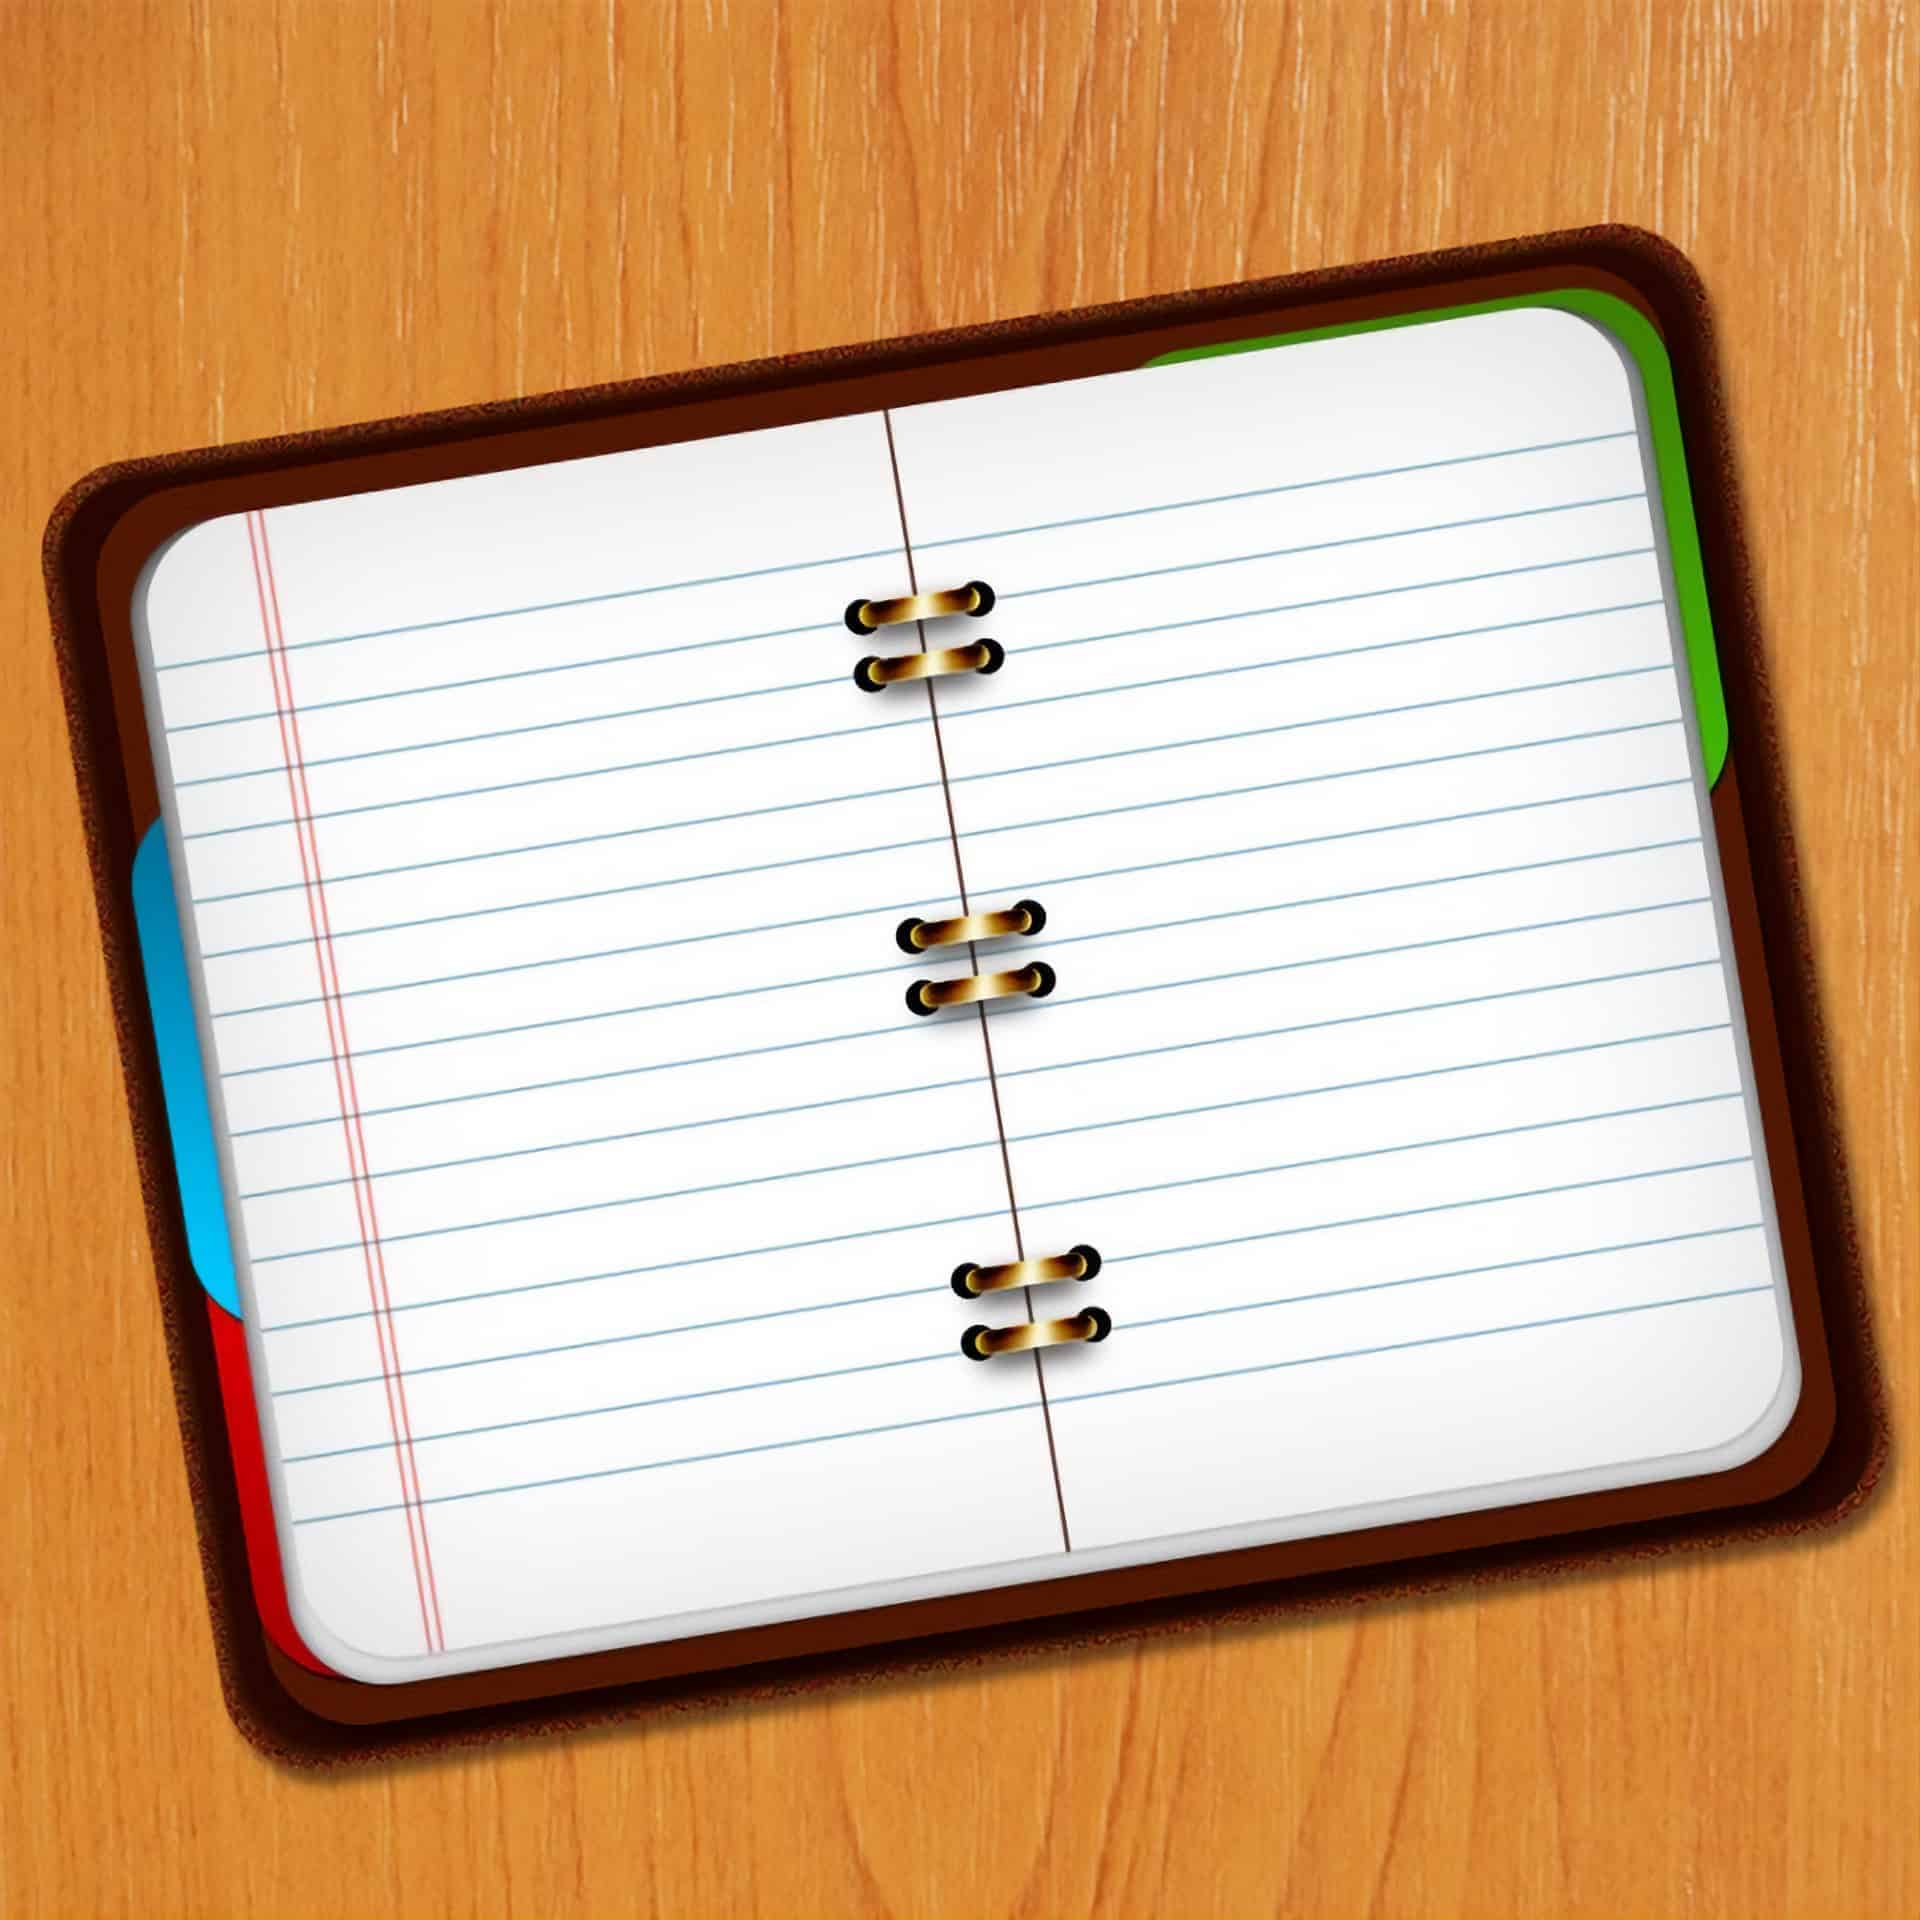 Create a Pixel-Perfect Notebook Icon in Photoshop